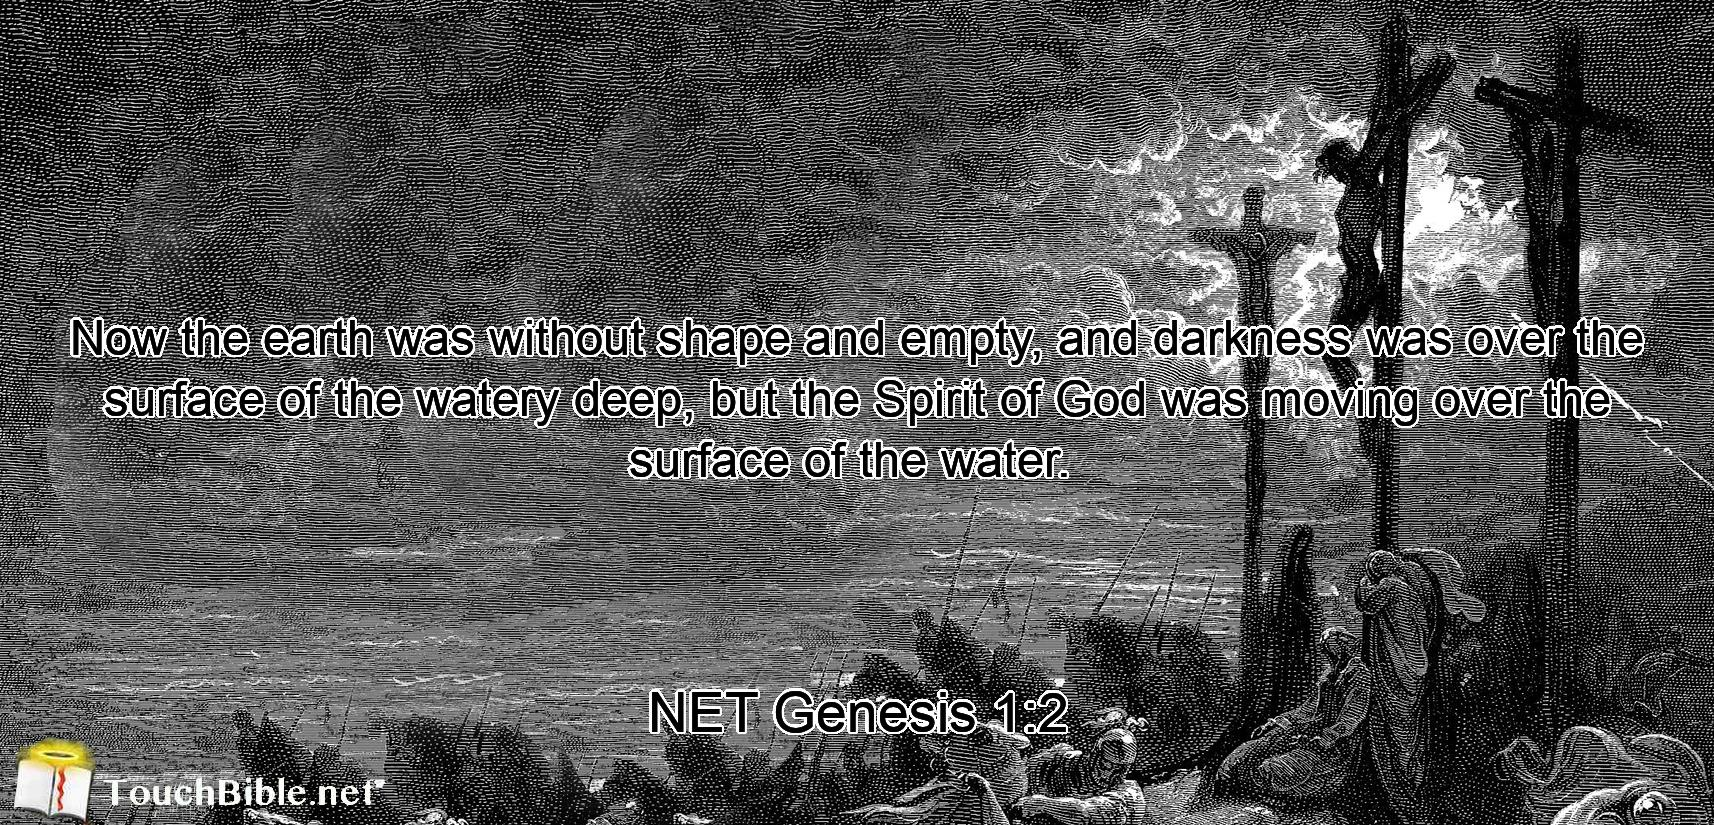 Now  the earth  was without shape and empty,  and darkness  was over the surface of the watery deep,  but the Spirit of God  was moving  over the surface  of the water.